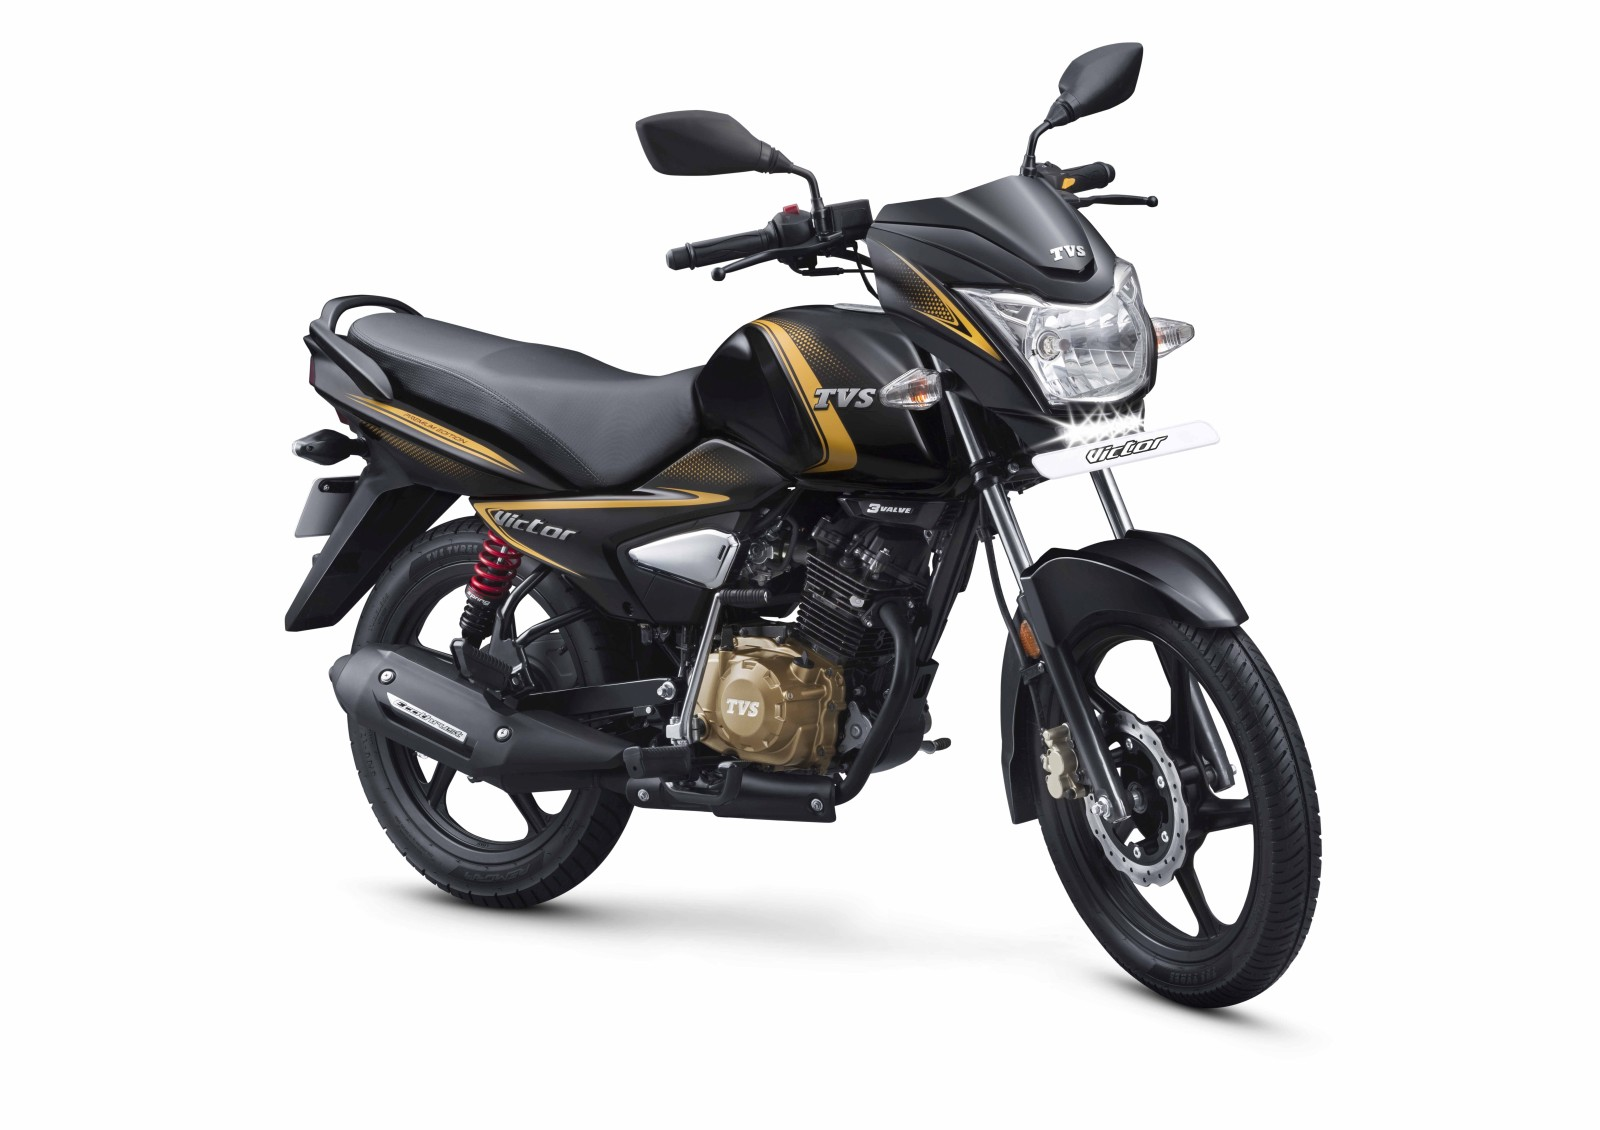 TVS NTORQ 125 goes official in India